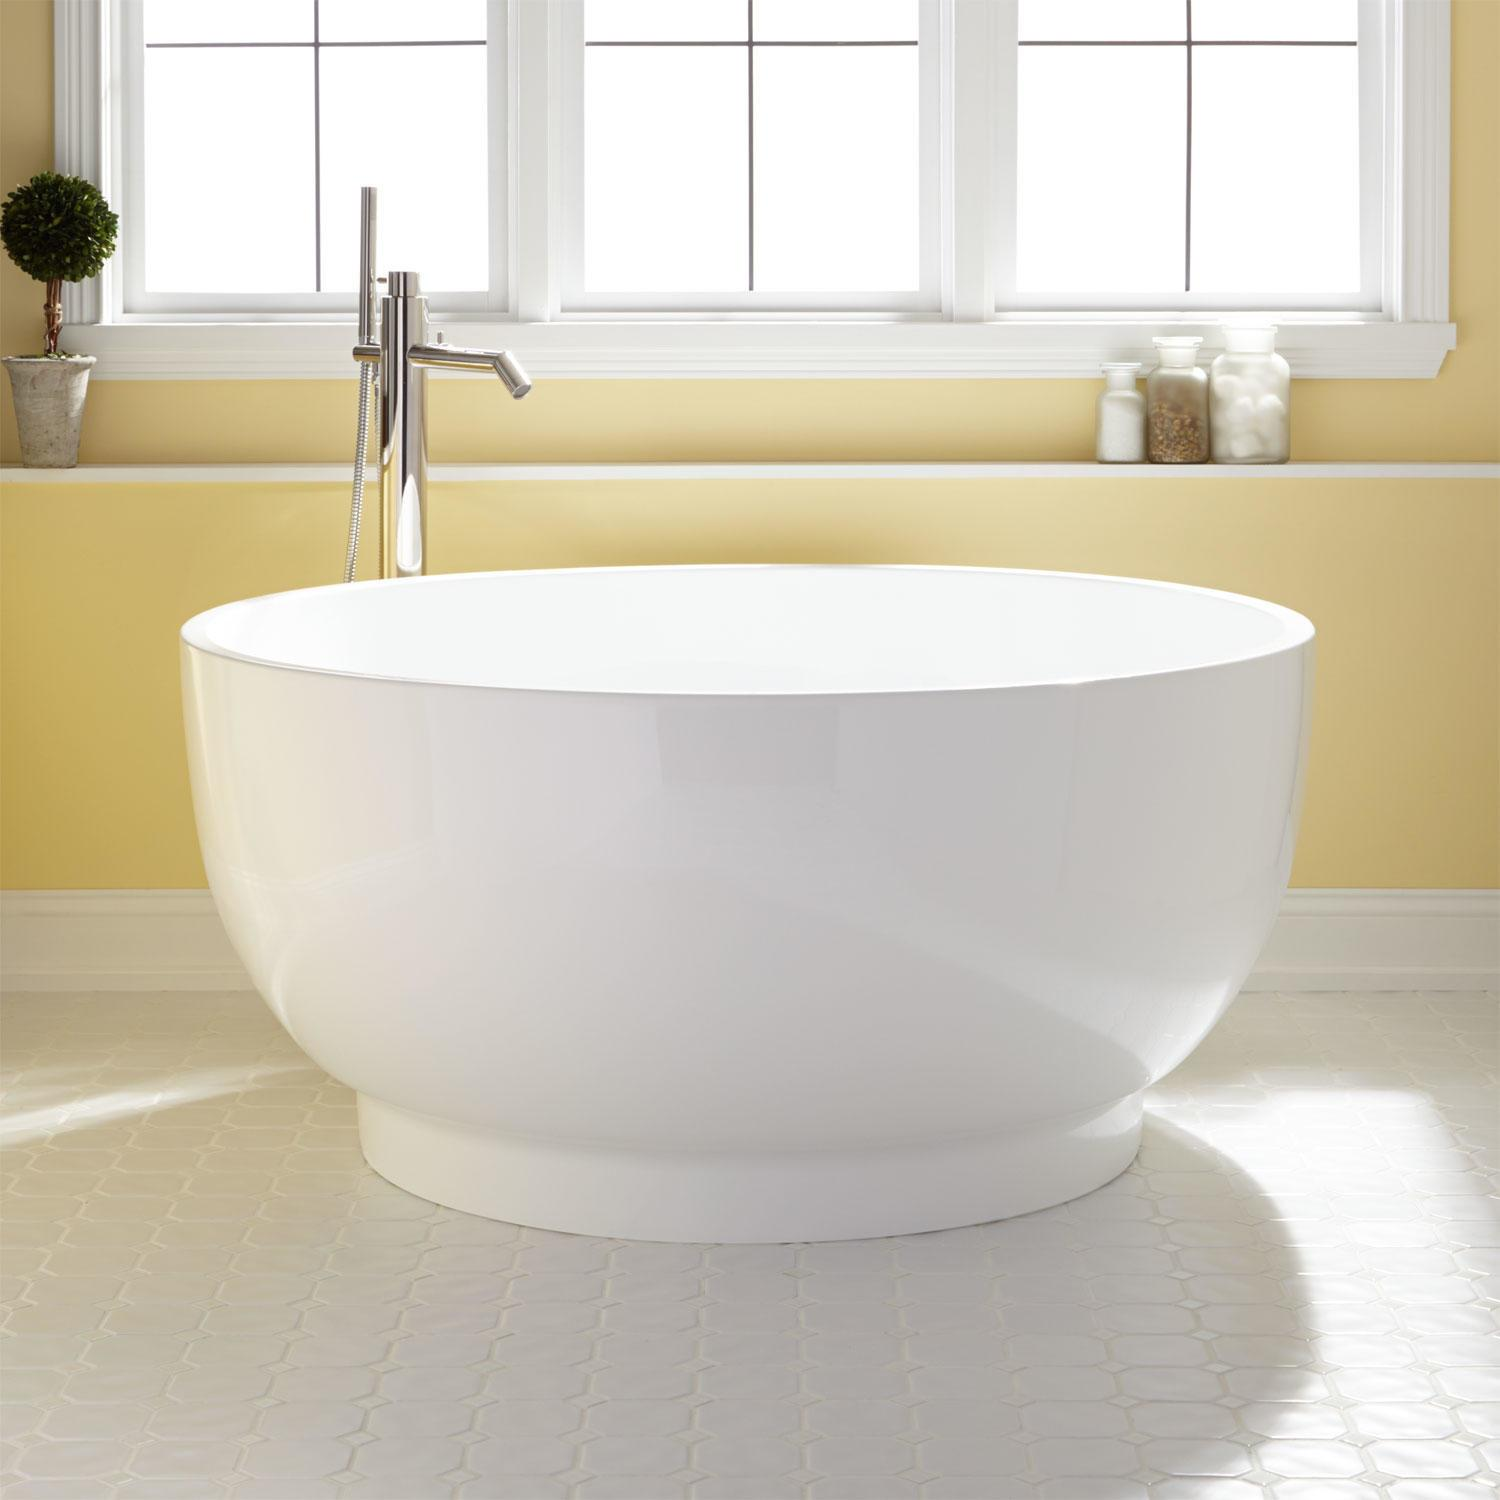 Kaimu Round Acrylic Japanese Soaking Tub Overflow